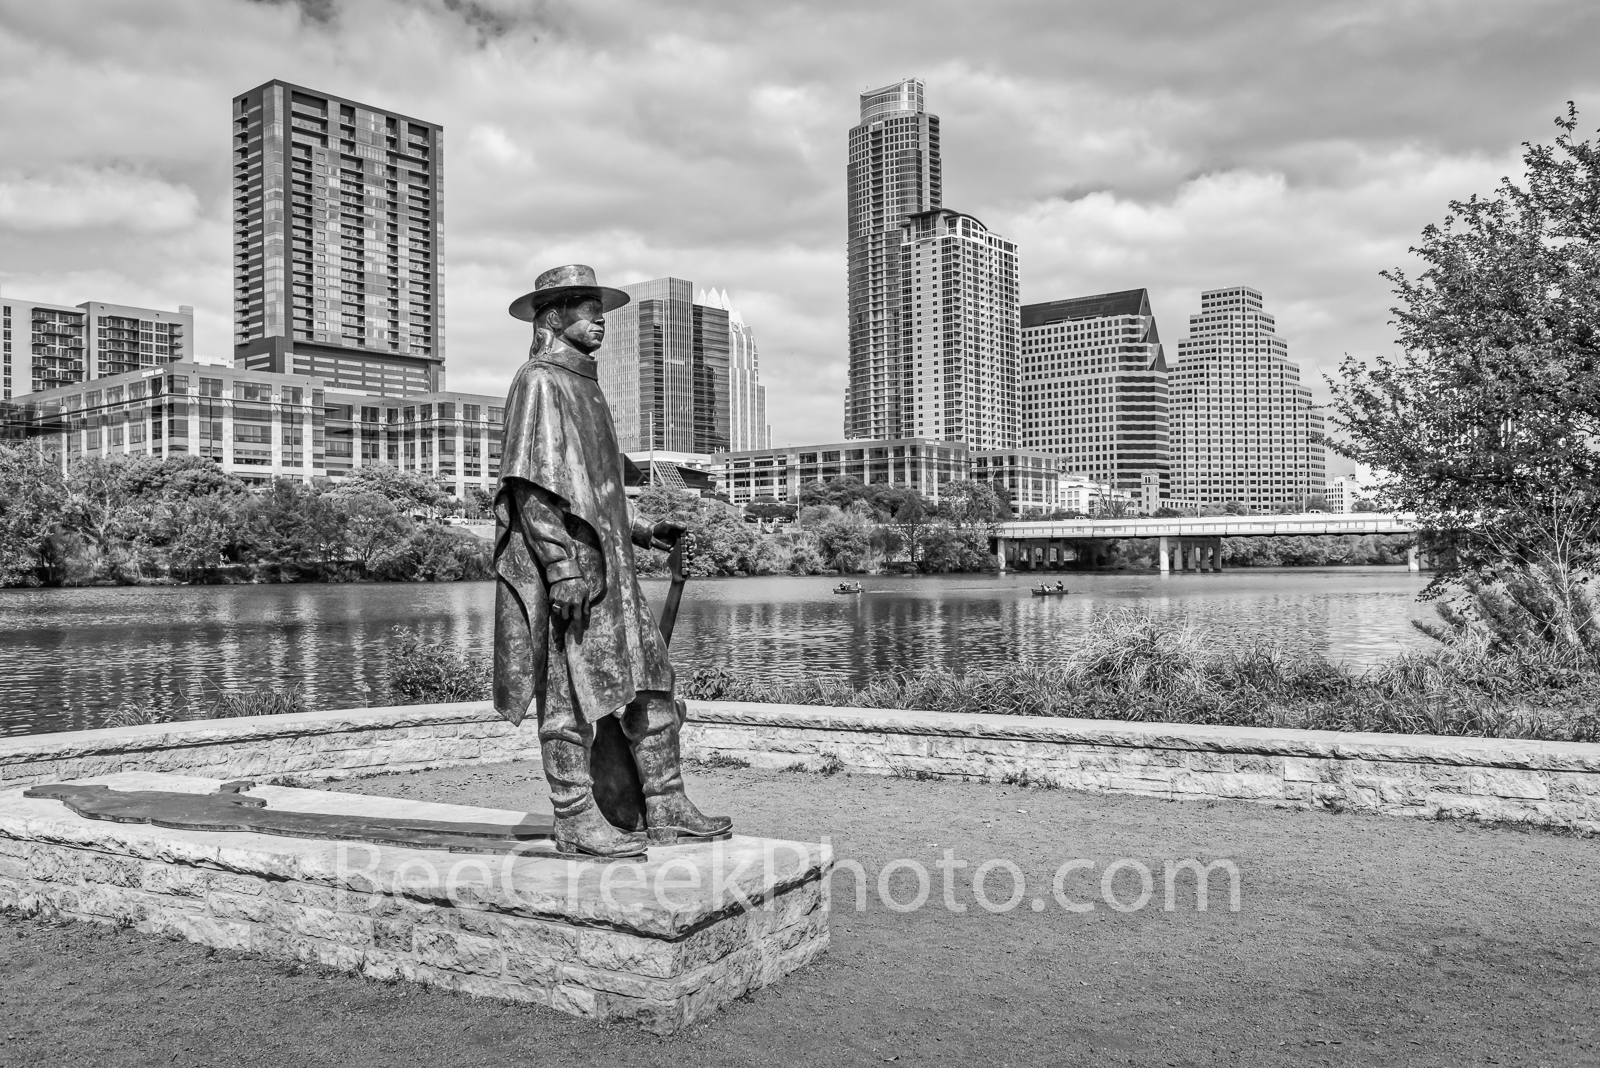 Stevie Ray Vaughn Austin BW - This is another view of the Stevie Ray Vaughn statue that stands along town lake or Lady Bird Lake...